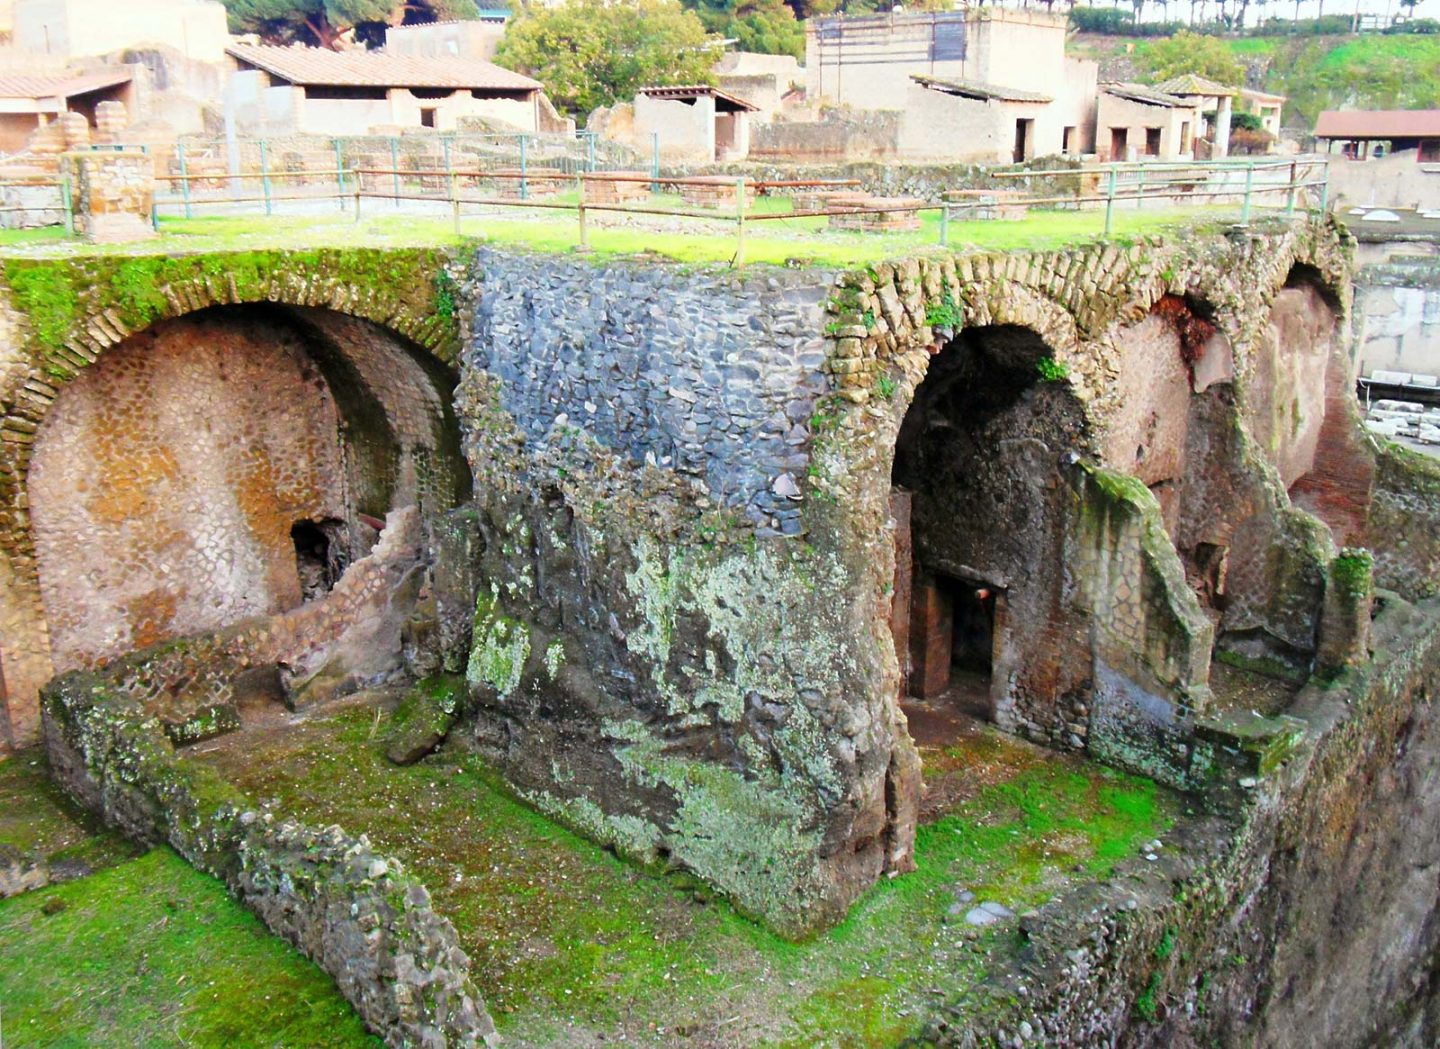 boathouse caves at herculaneum